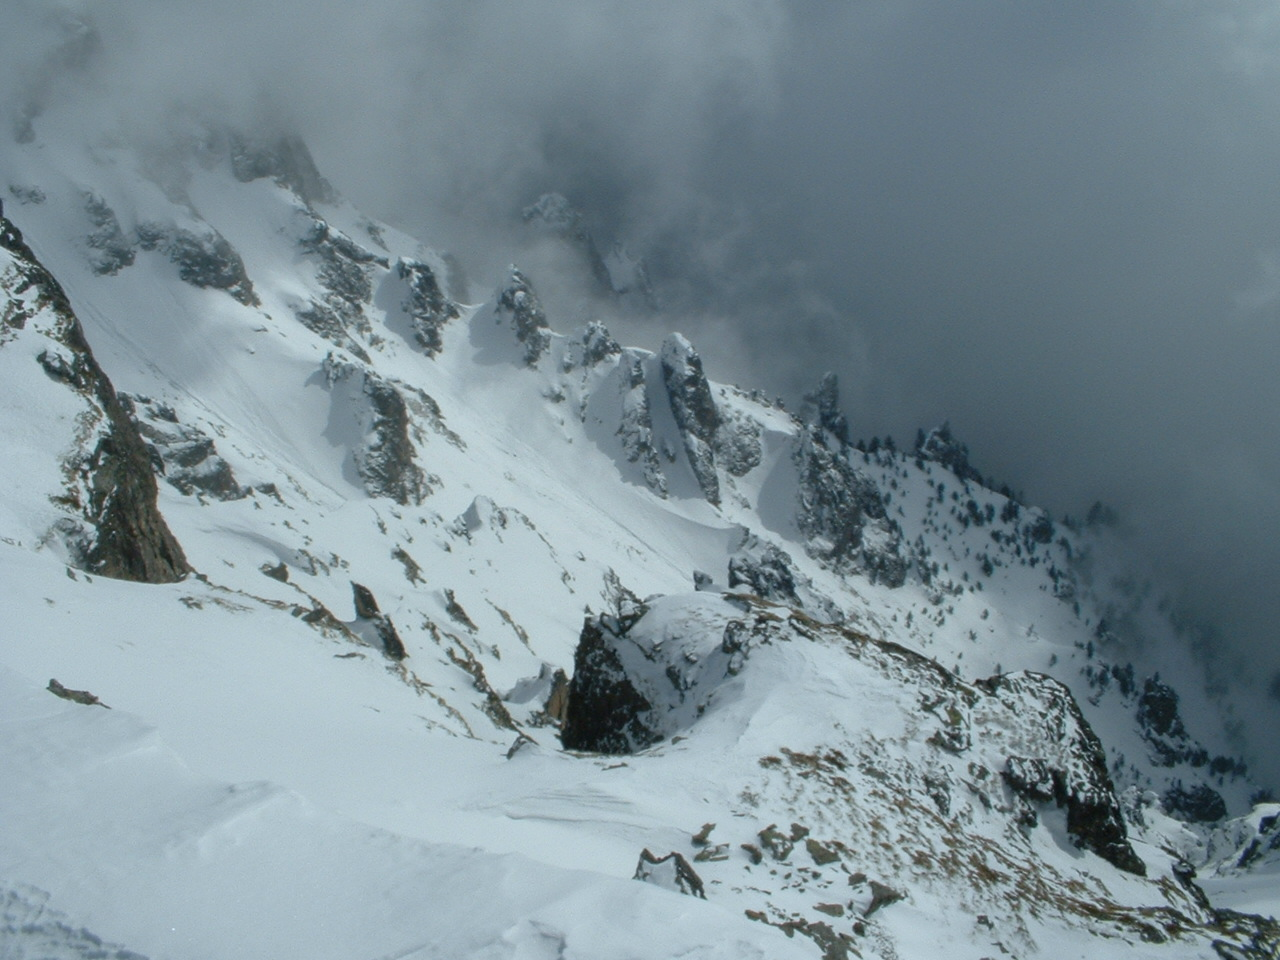 The Goat Couloir, 1 month before the first descent, Sunshine Village